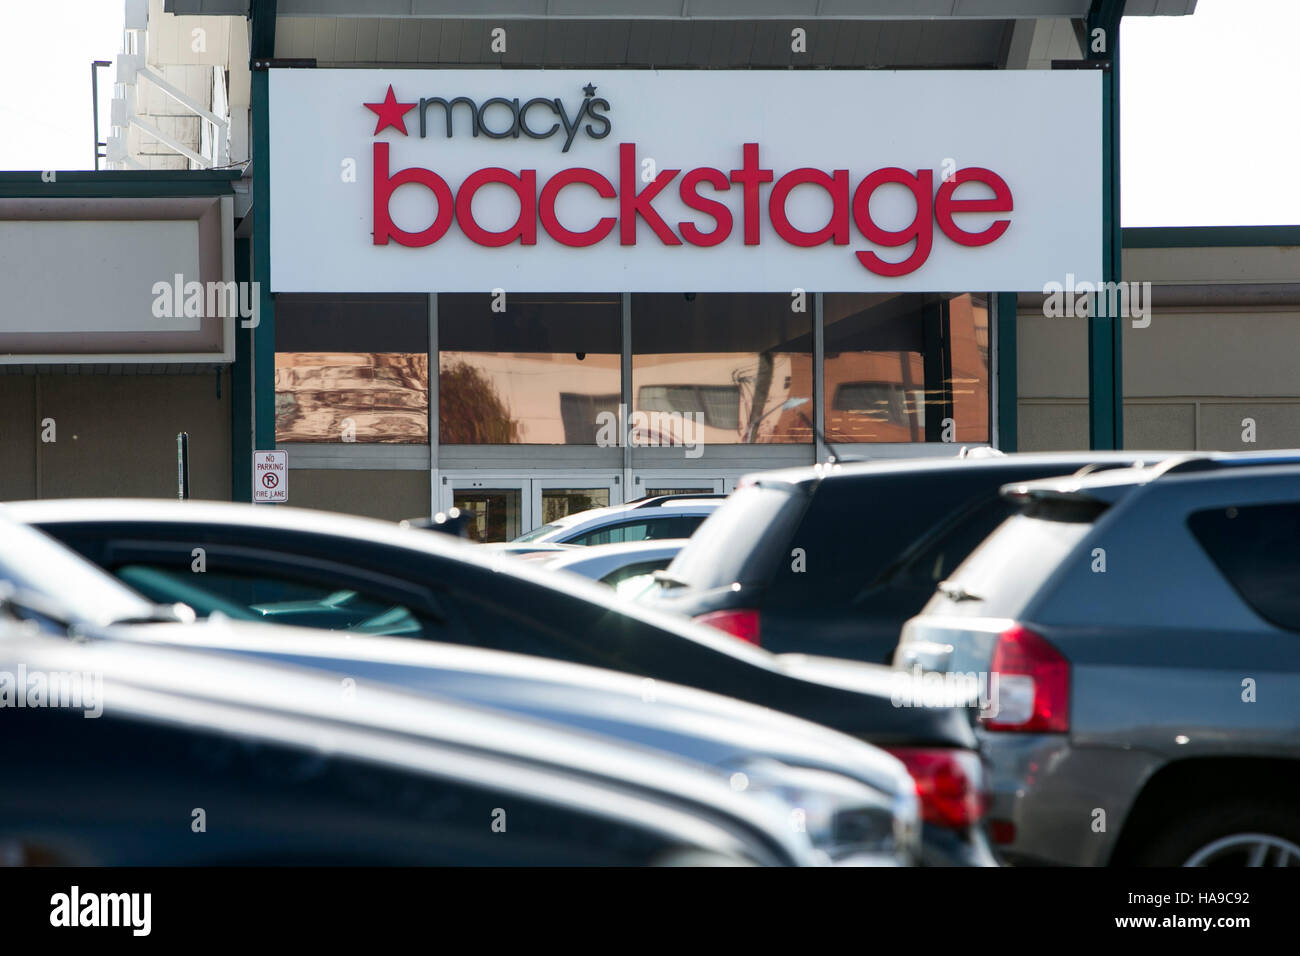 A logo sign outside of a Macy's Backstage retail store in West Orange, New Jersey on November 5, 2016. - Stock Image